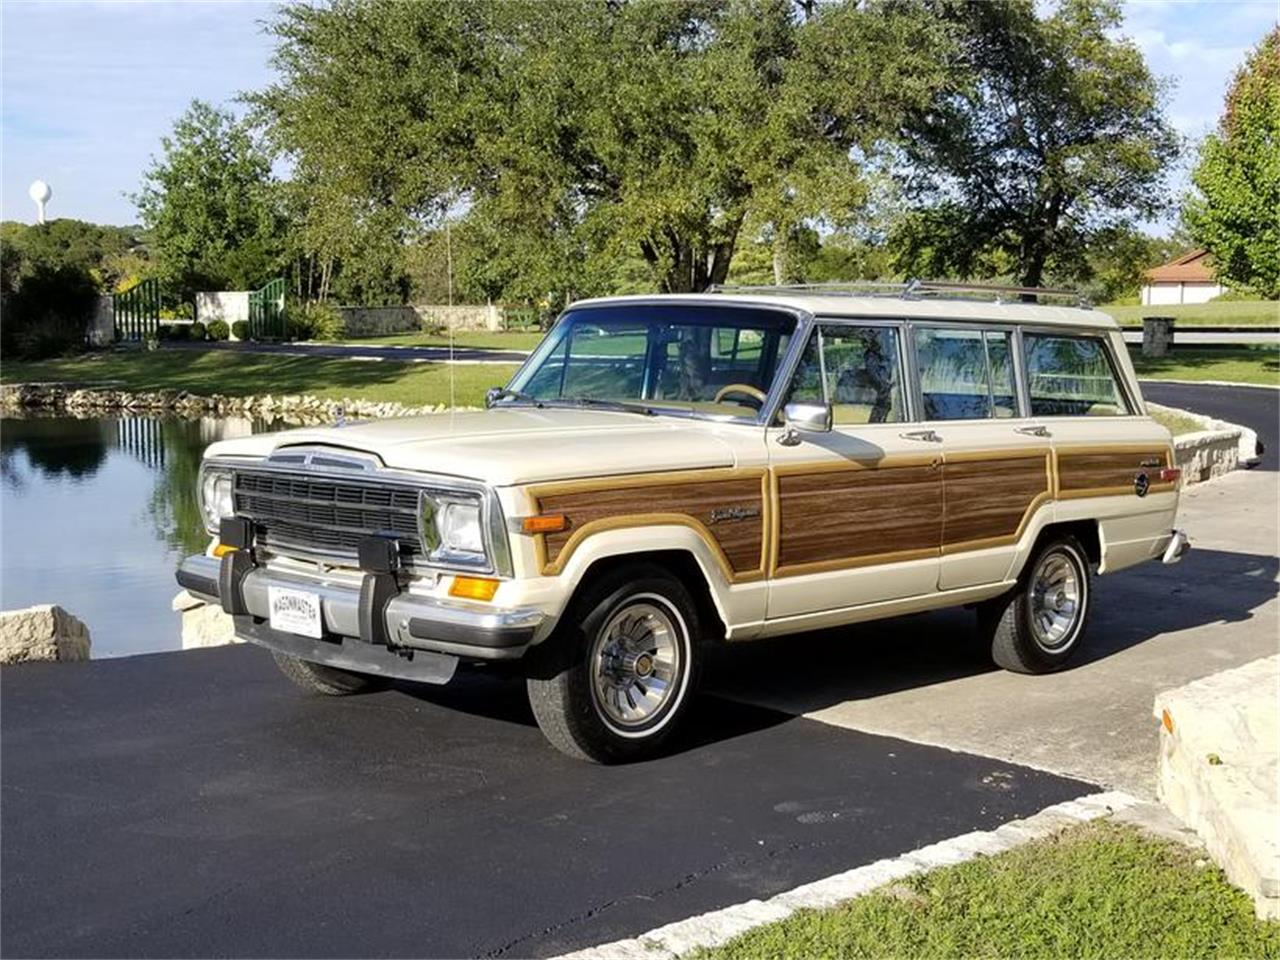 Jeep Grand Wagoneer For Sale >> 1987 Jeep Grand Wagoneer For Sale Classiccars Com Cc 1158040